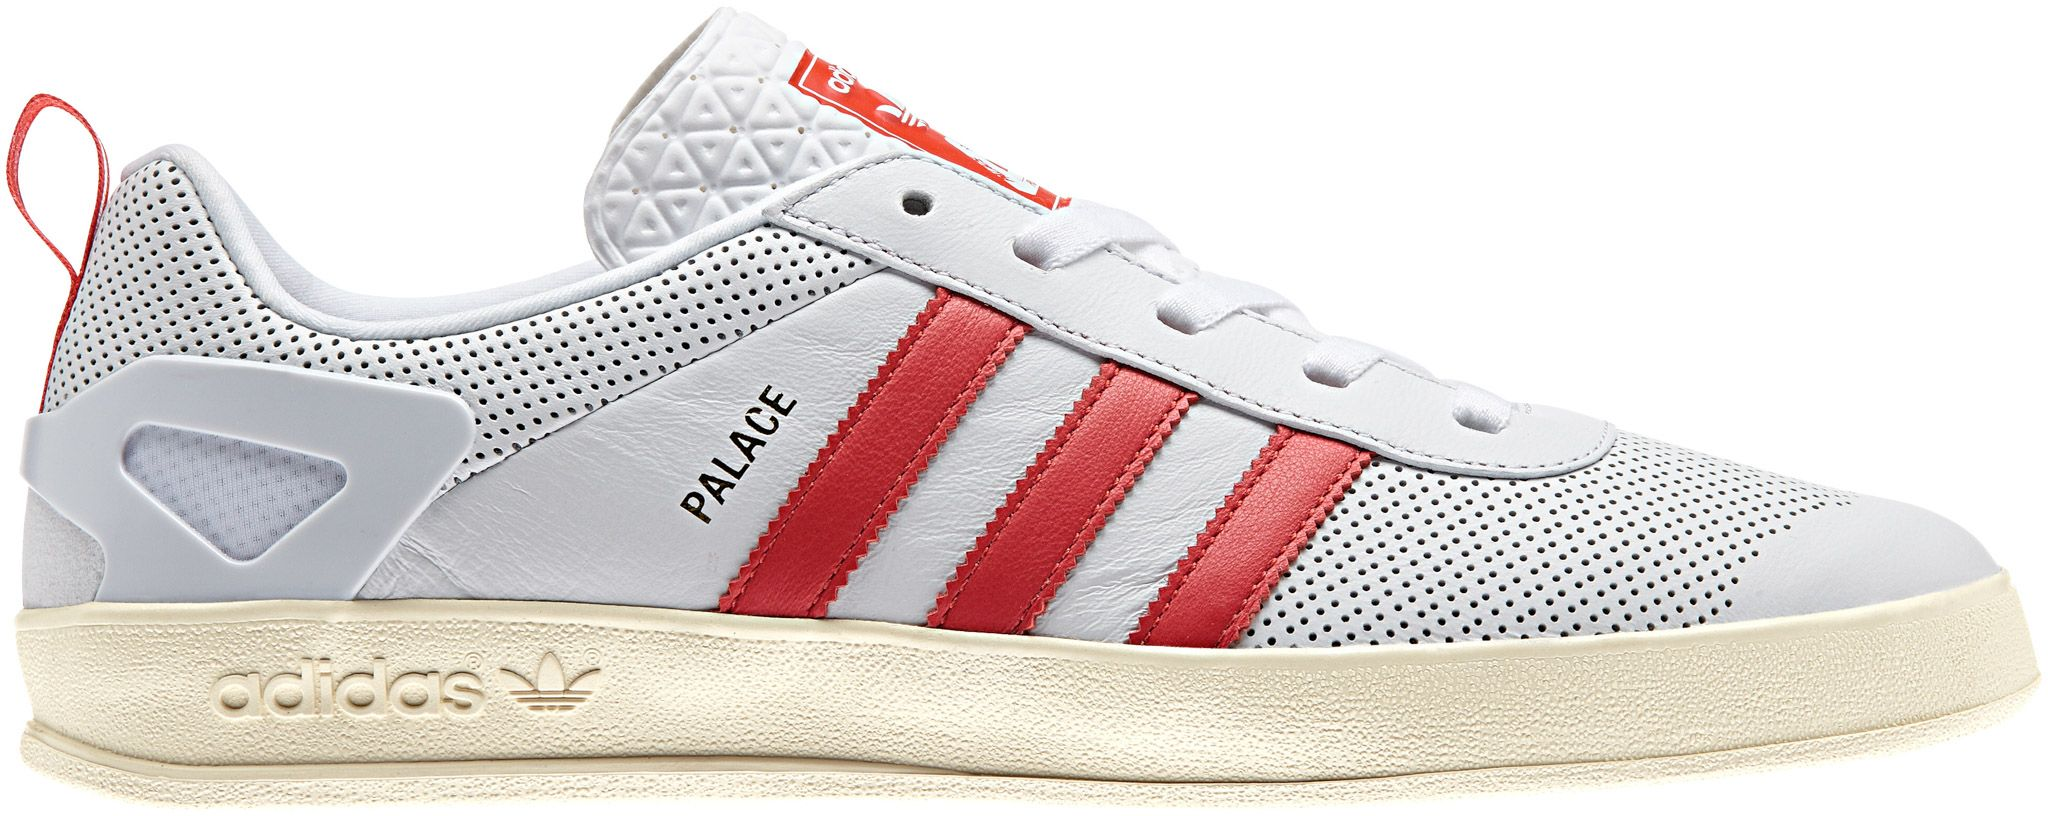 Fall Originals adidas x PALACE Winter – 20152015 RAjqc354LS